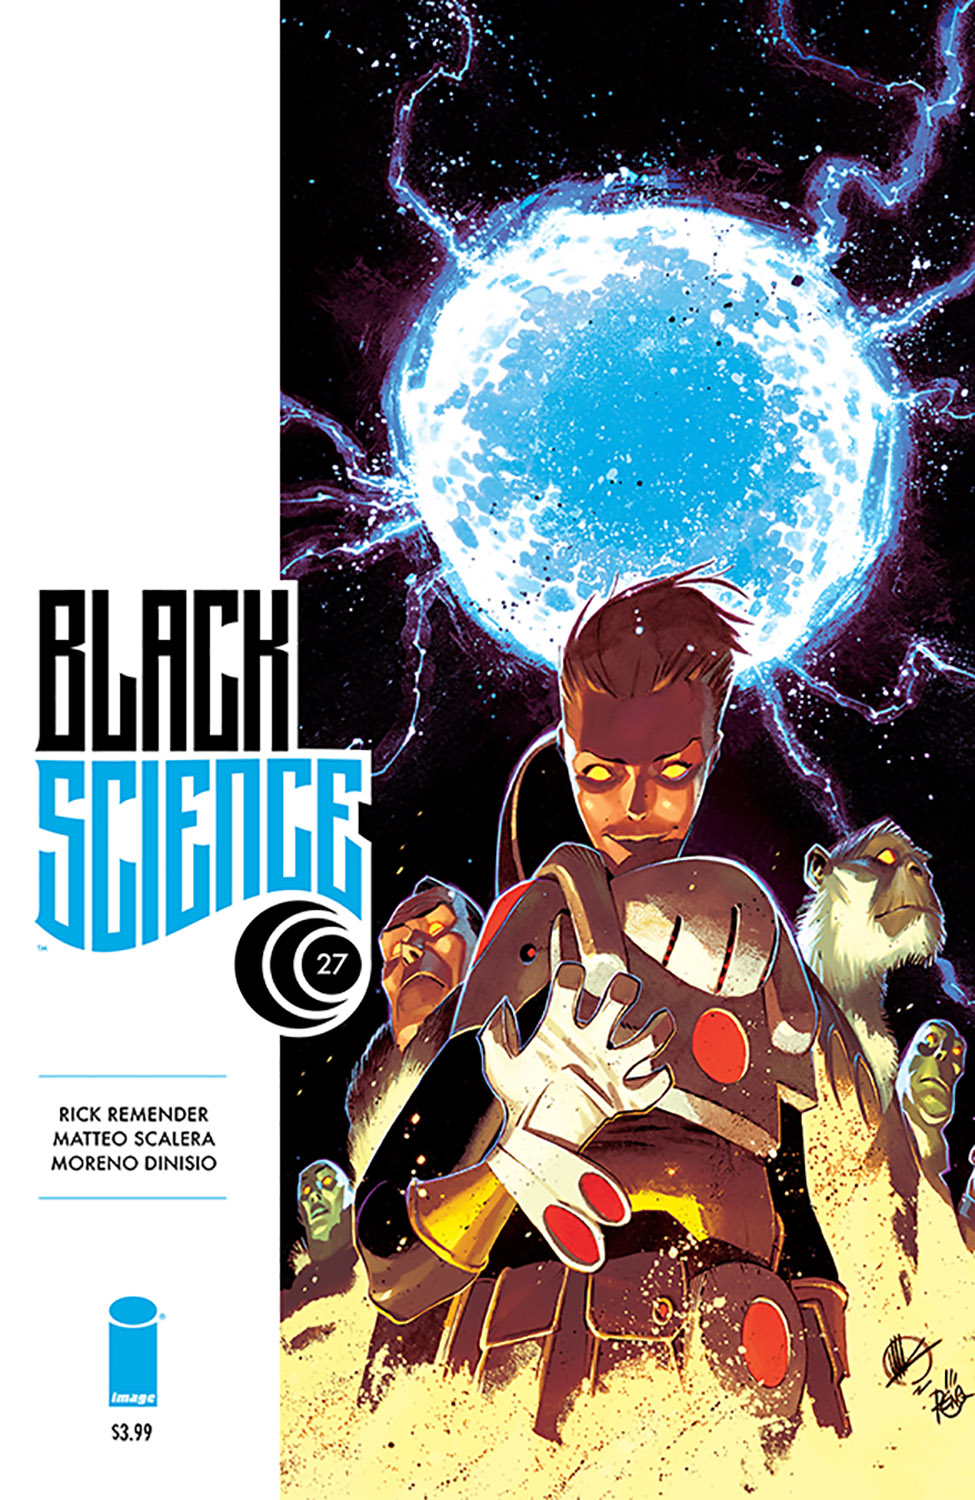 BLACK SCIENCE #27 (MR)